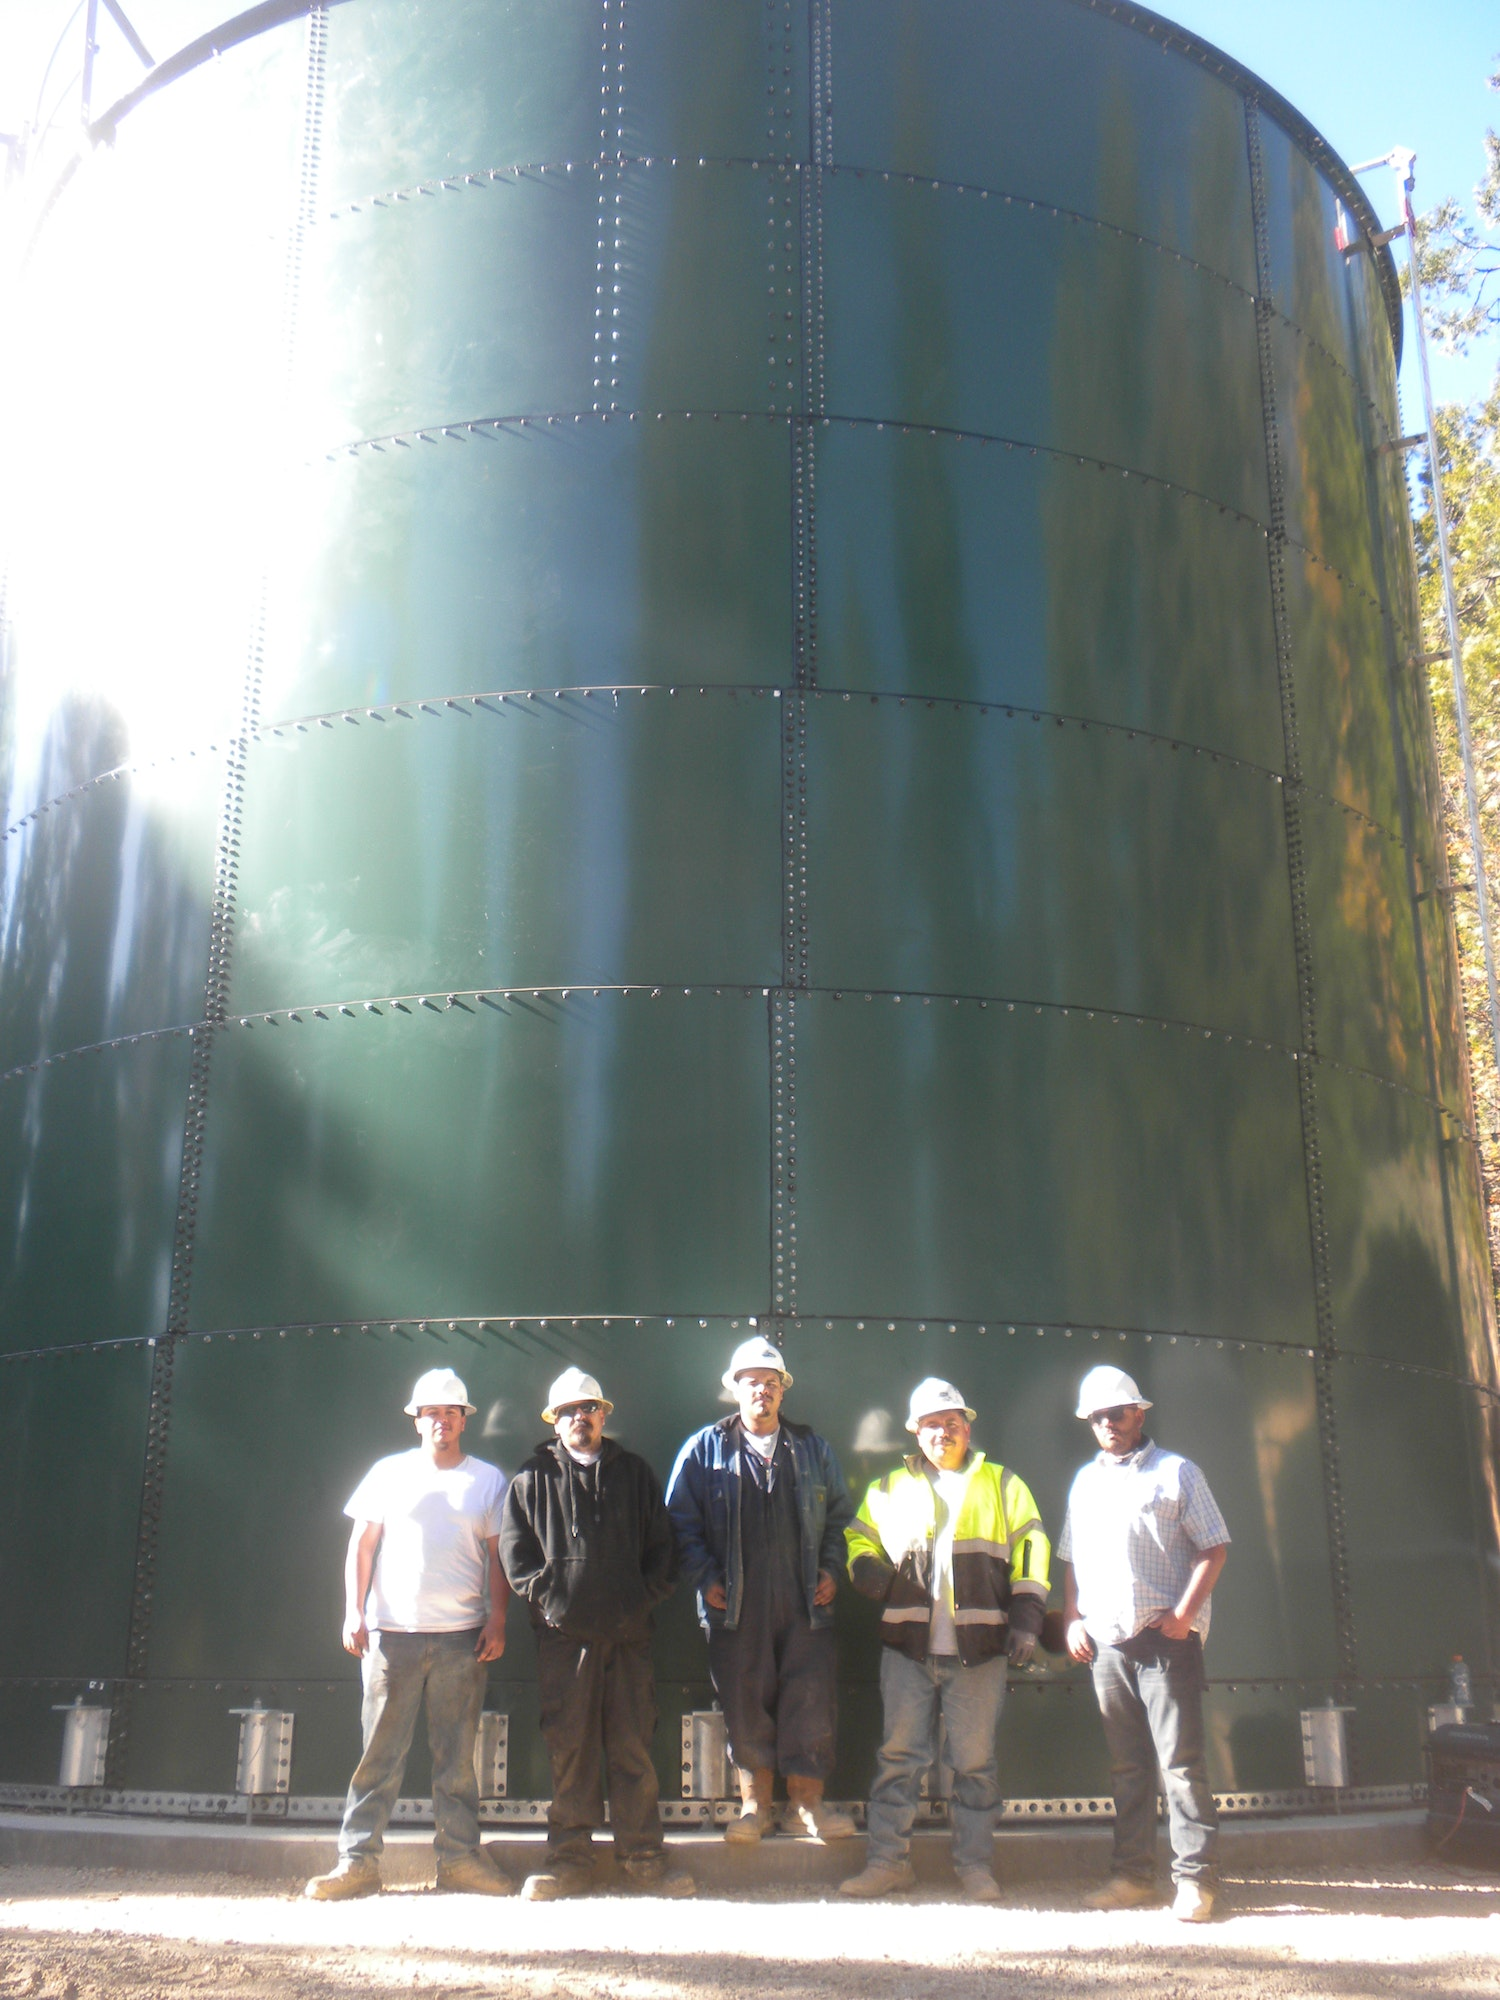 Nov. 8, 2018 The Thompson Tank Crew L to R Gabriel, Joseph, Steven, Jose and George This crew gets it done!